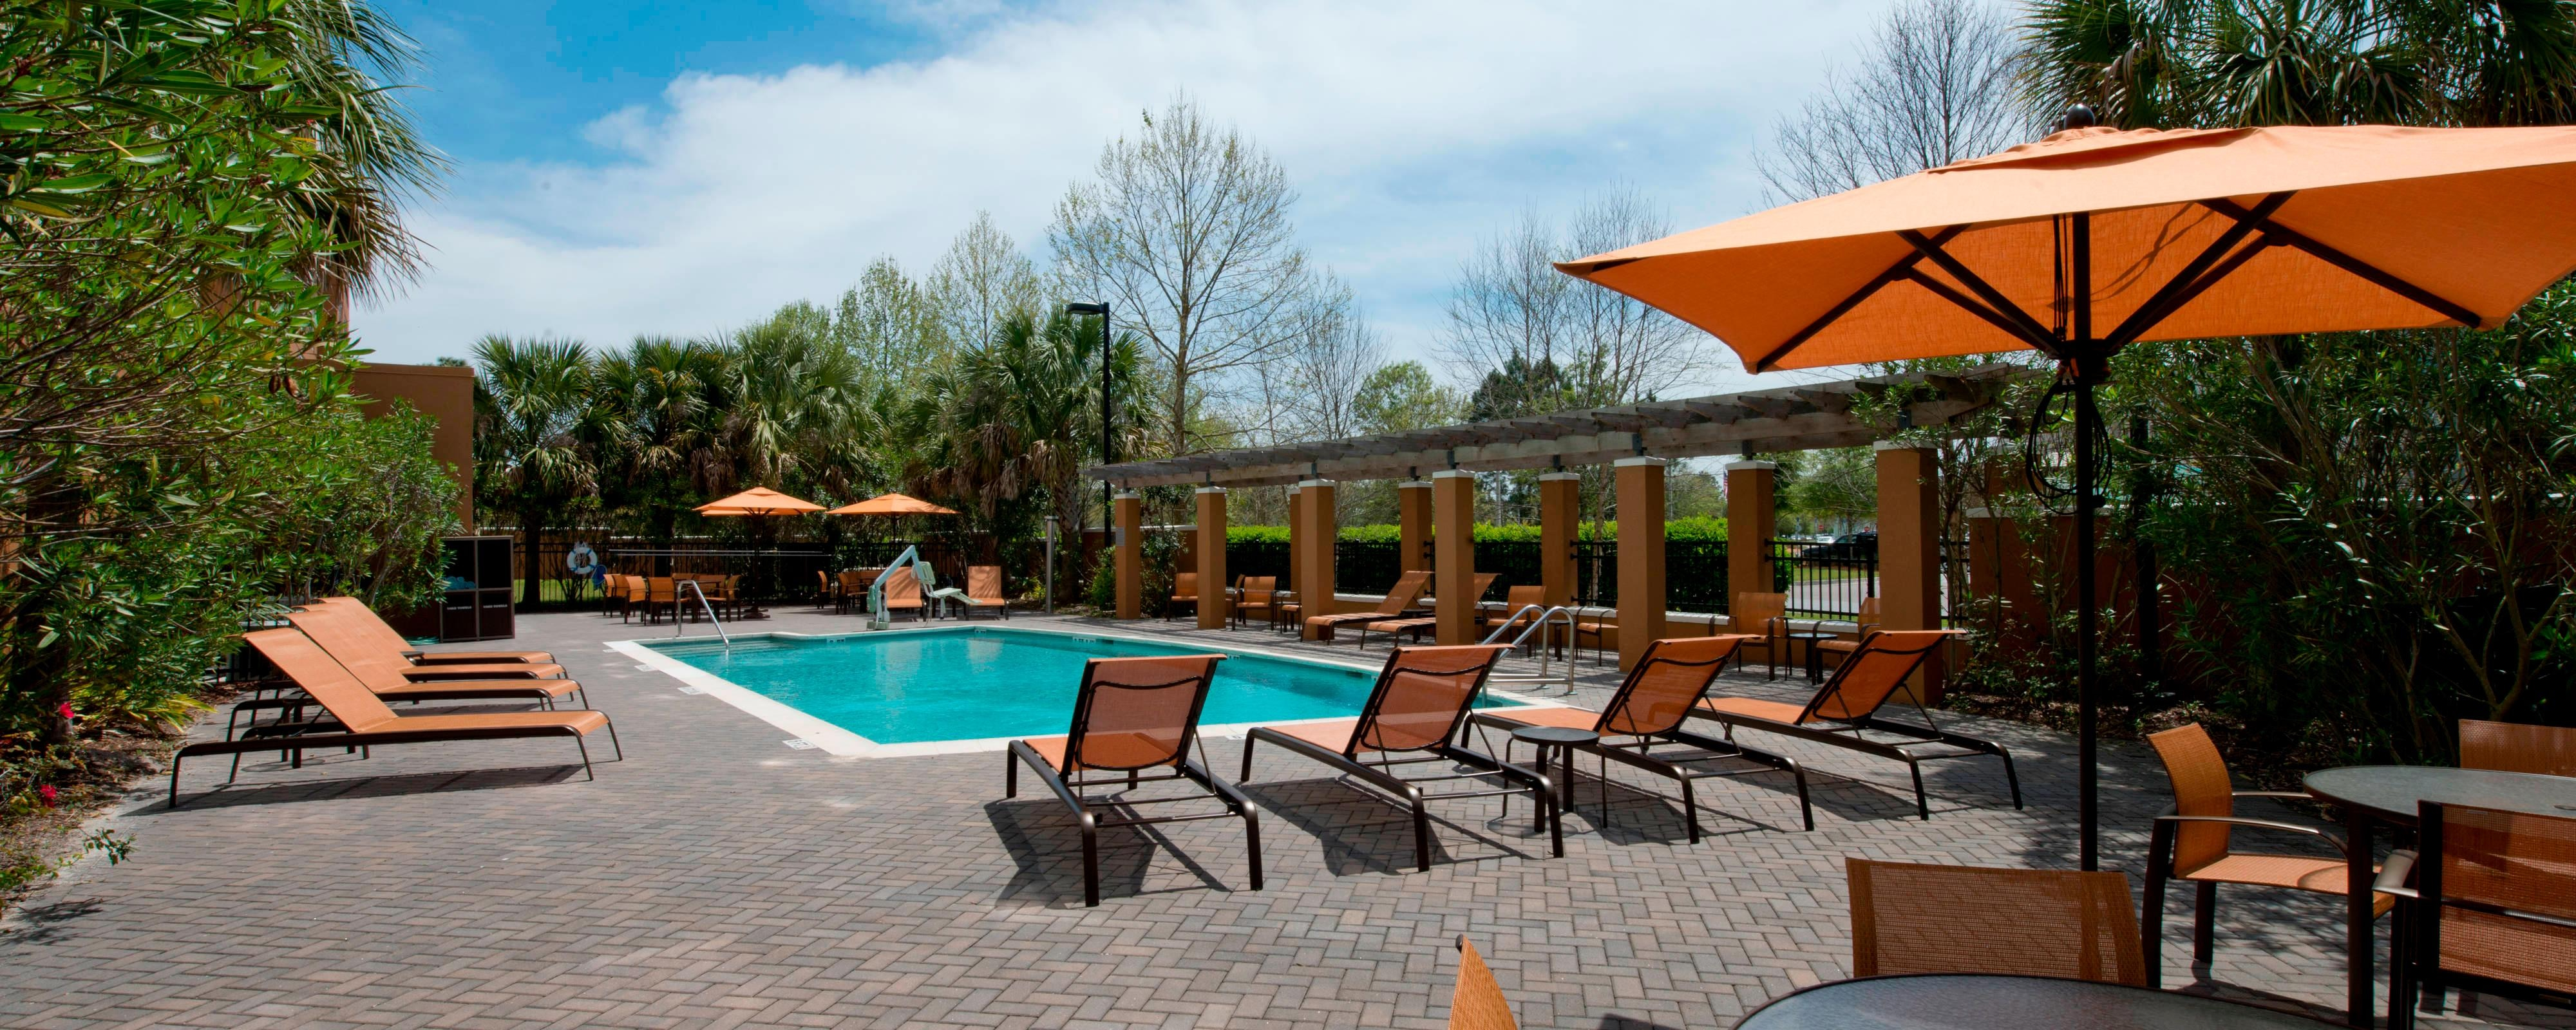 Jacksonville FL Courtyard by Marriott